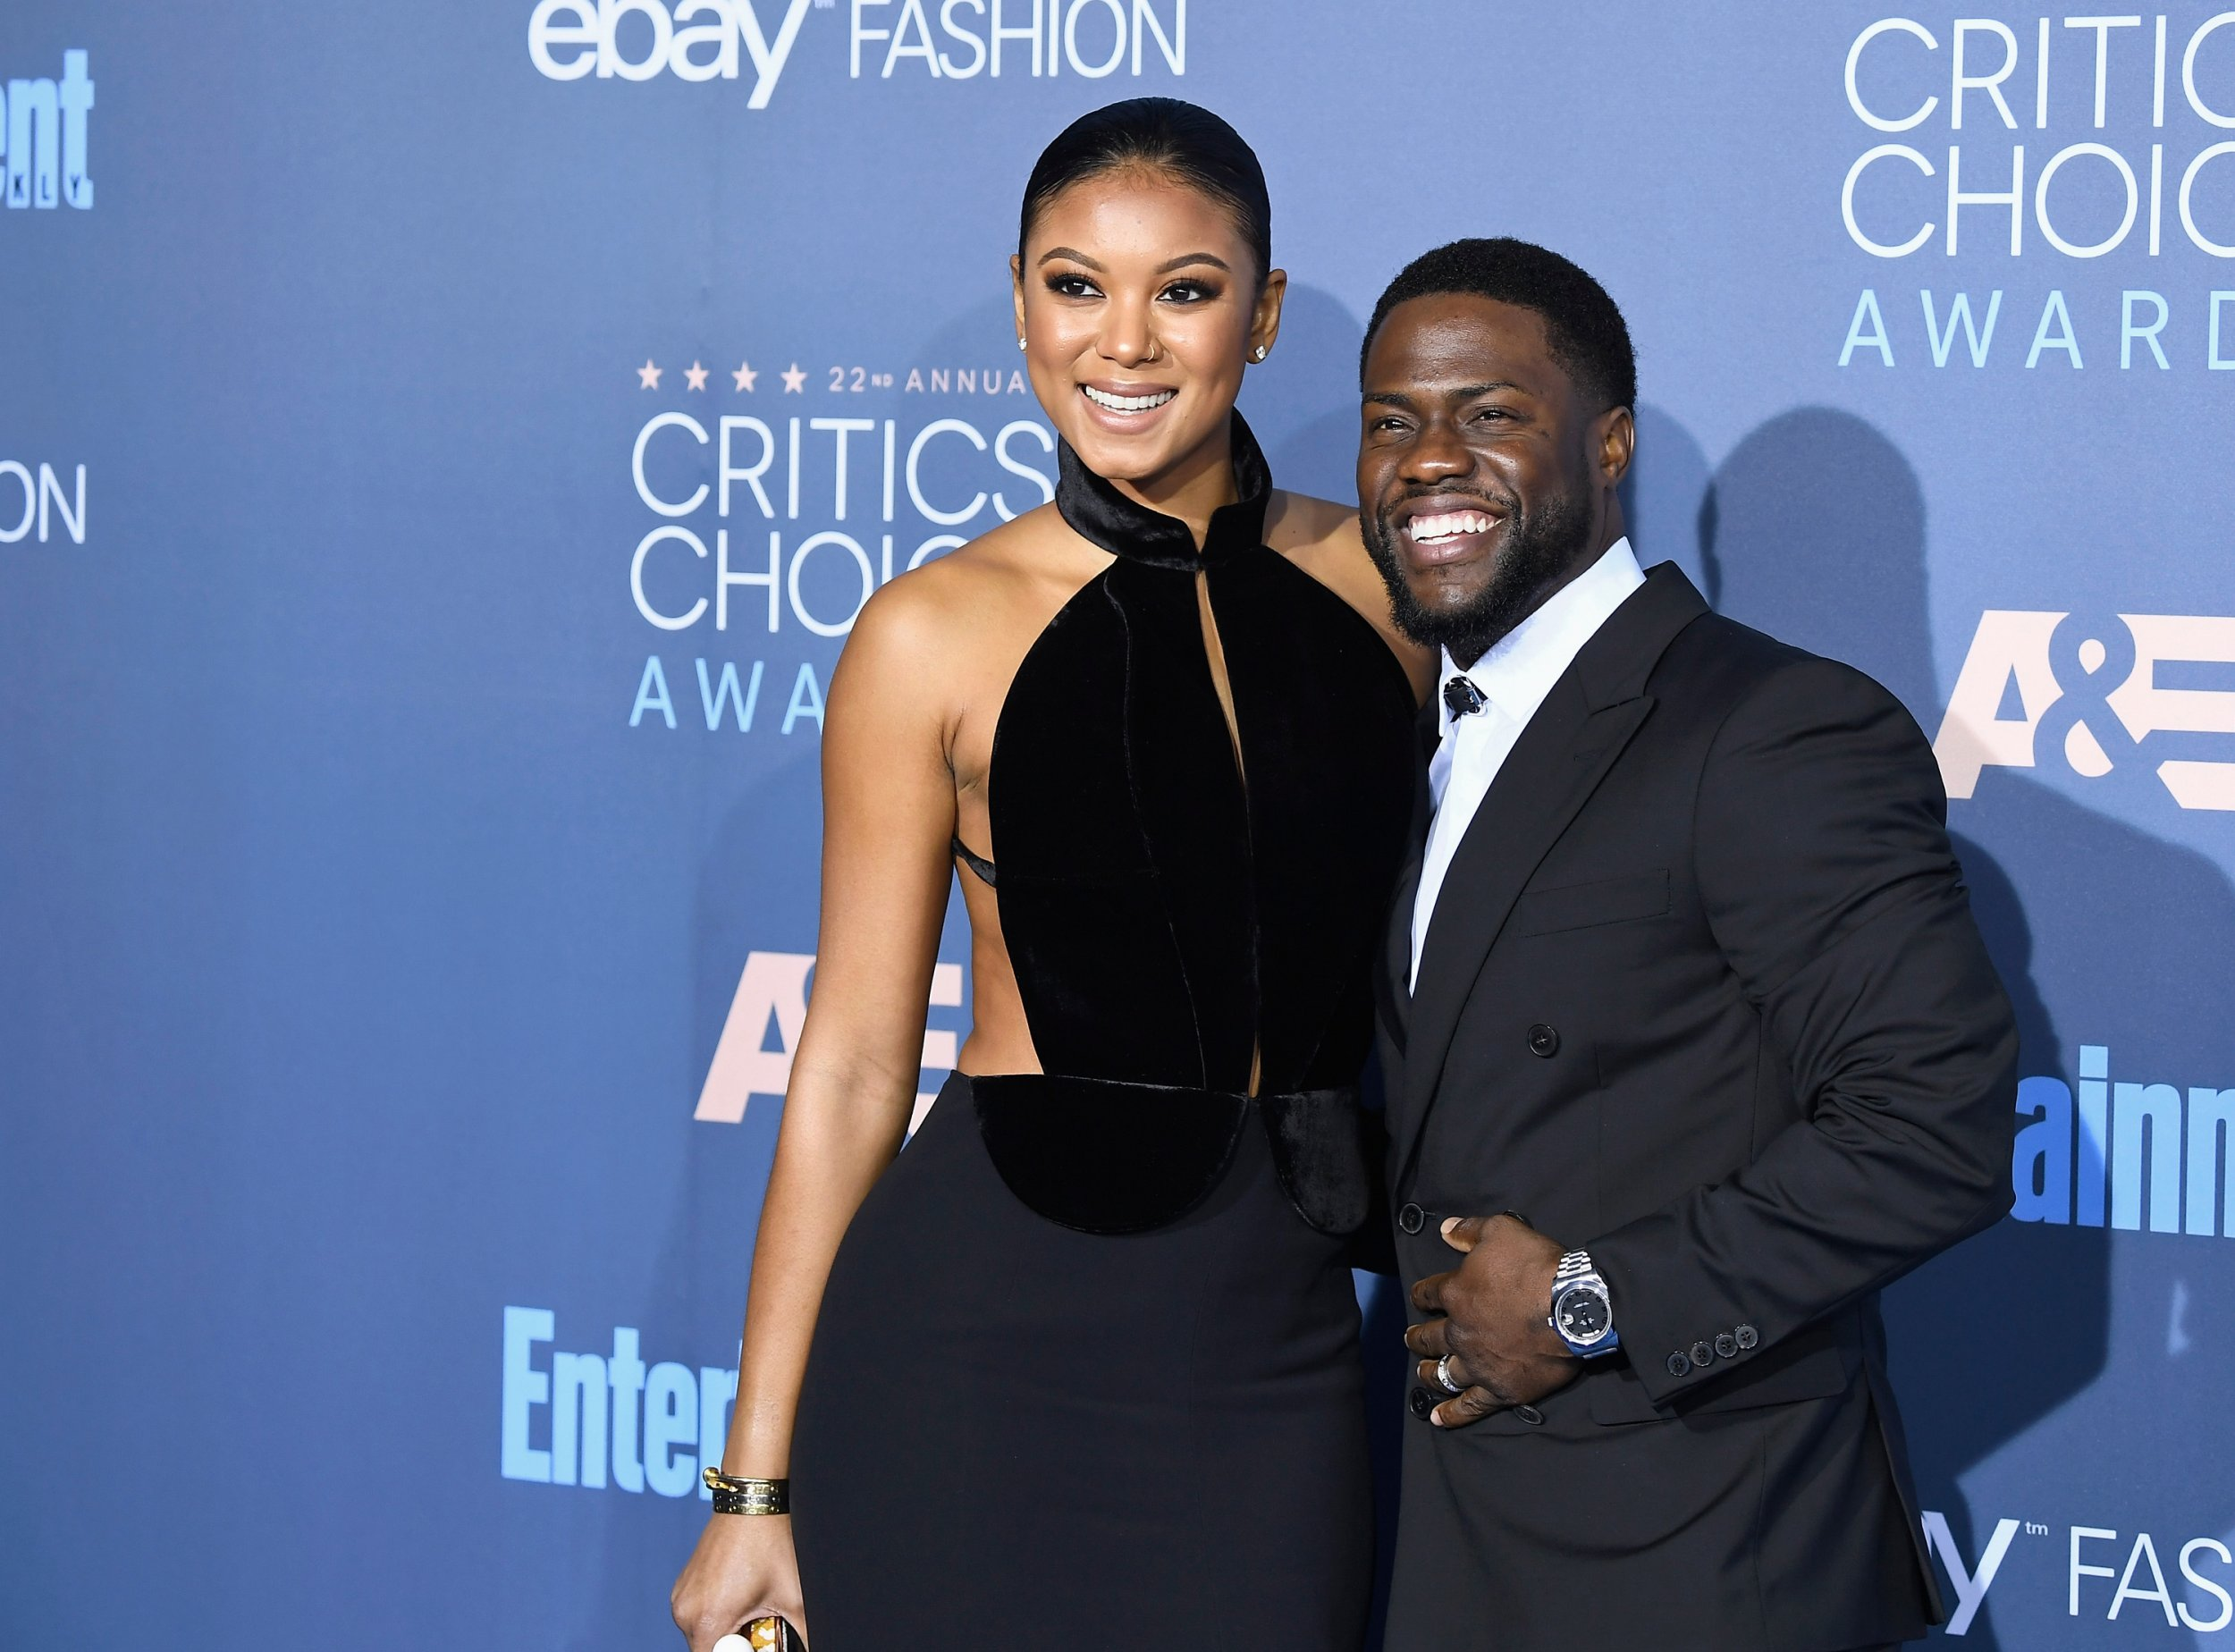 Kevin Hart Cheating Scandal Poses Question: Is Being With